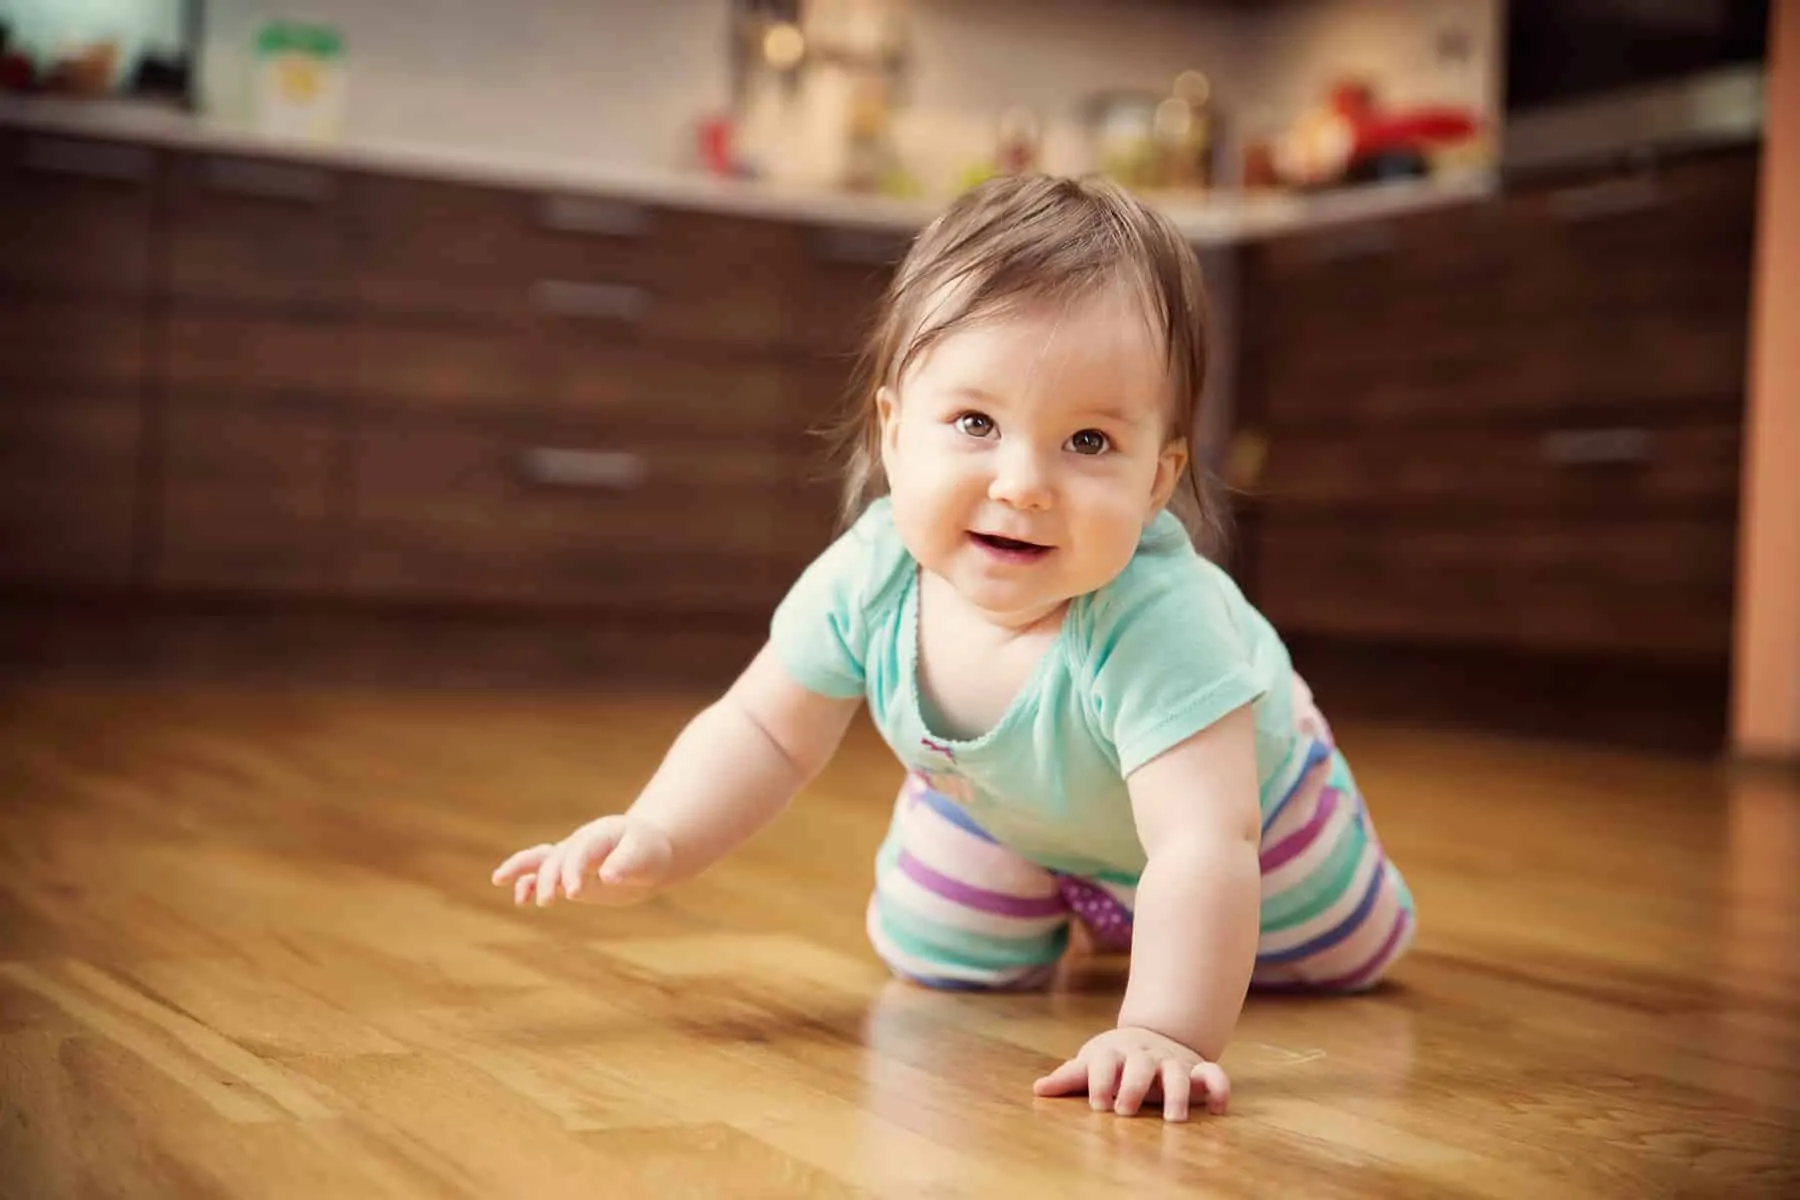 image - Best Ways to Keep Your Baby Safe in an Apartment